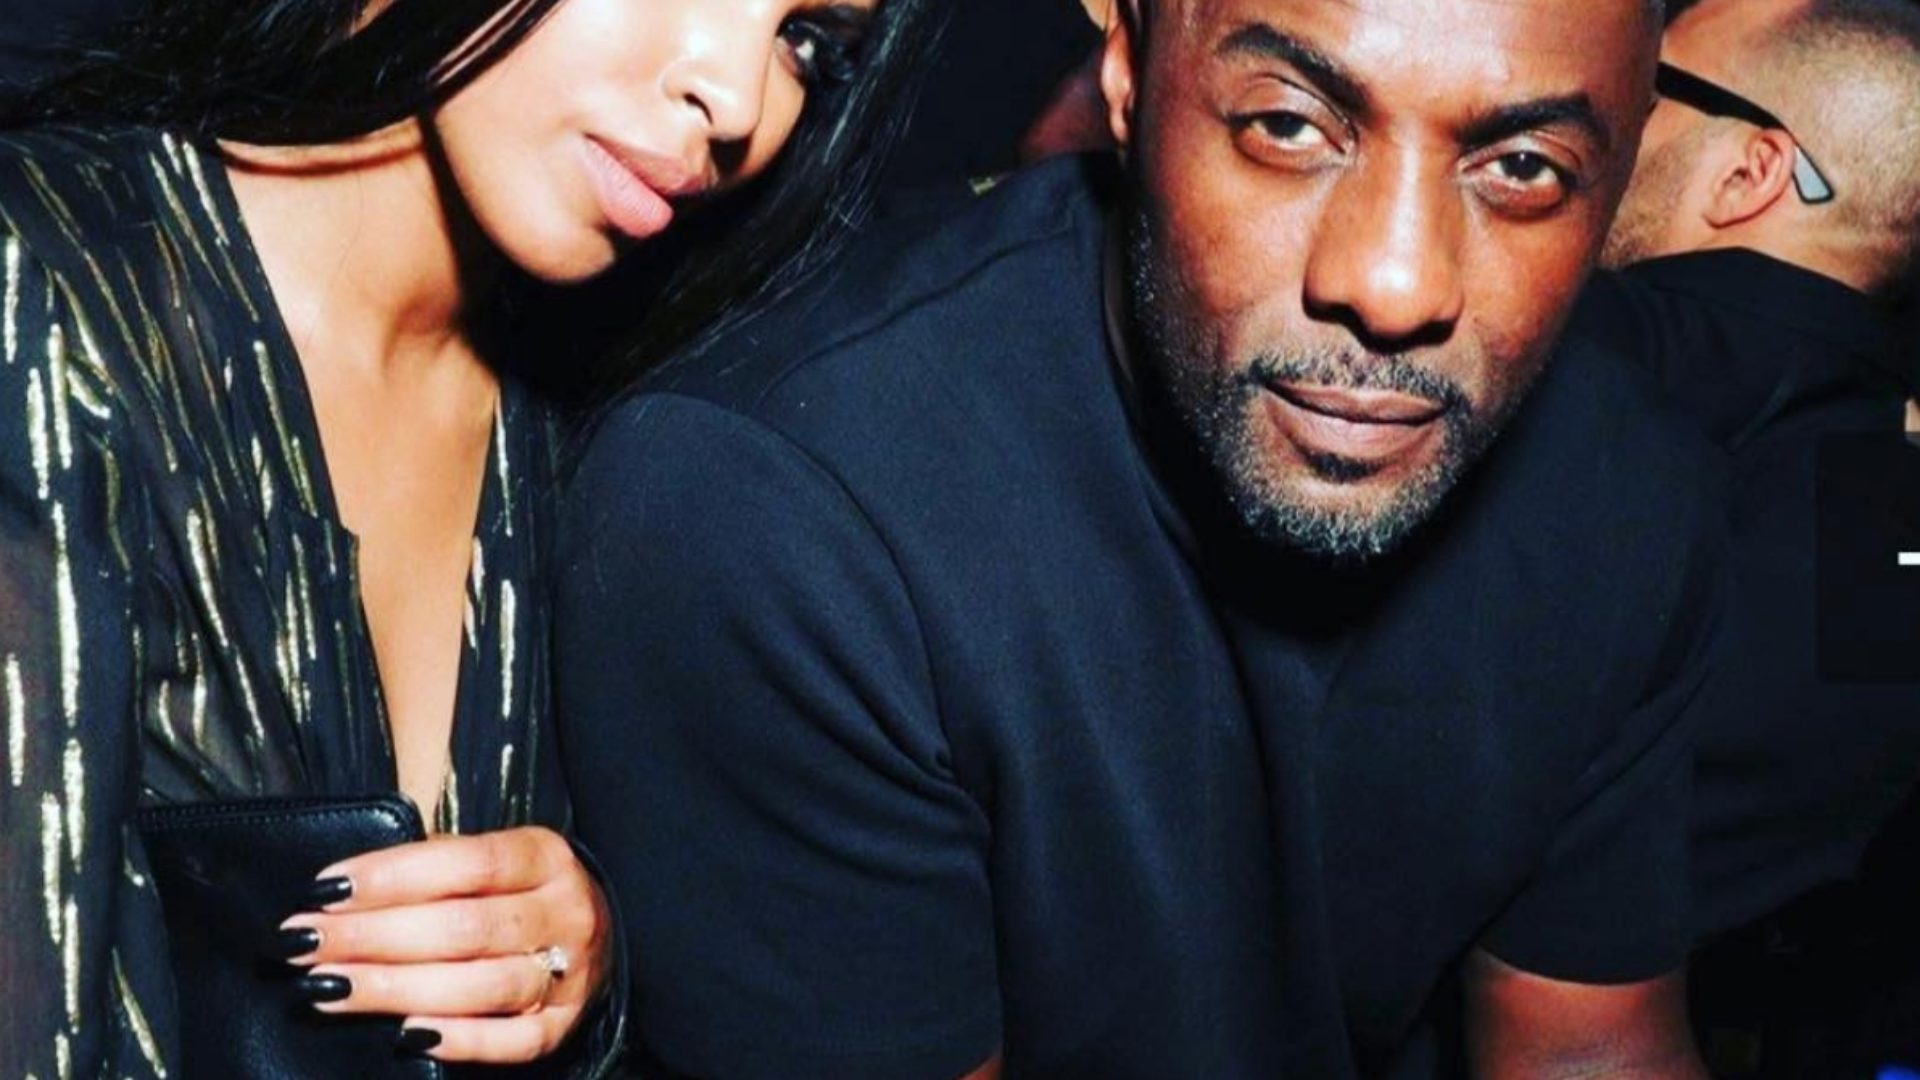 Date Night Goals: Idris Elba And Sabrina Dhowre Party At Jay Z And Beyonce's OTRII Show In London